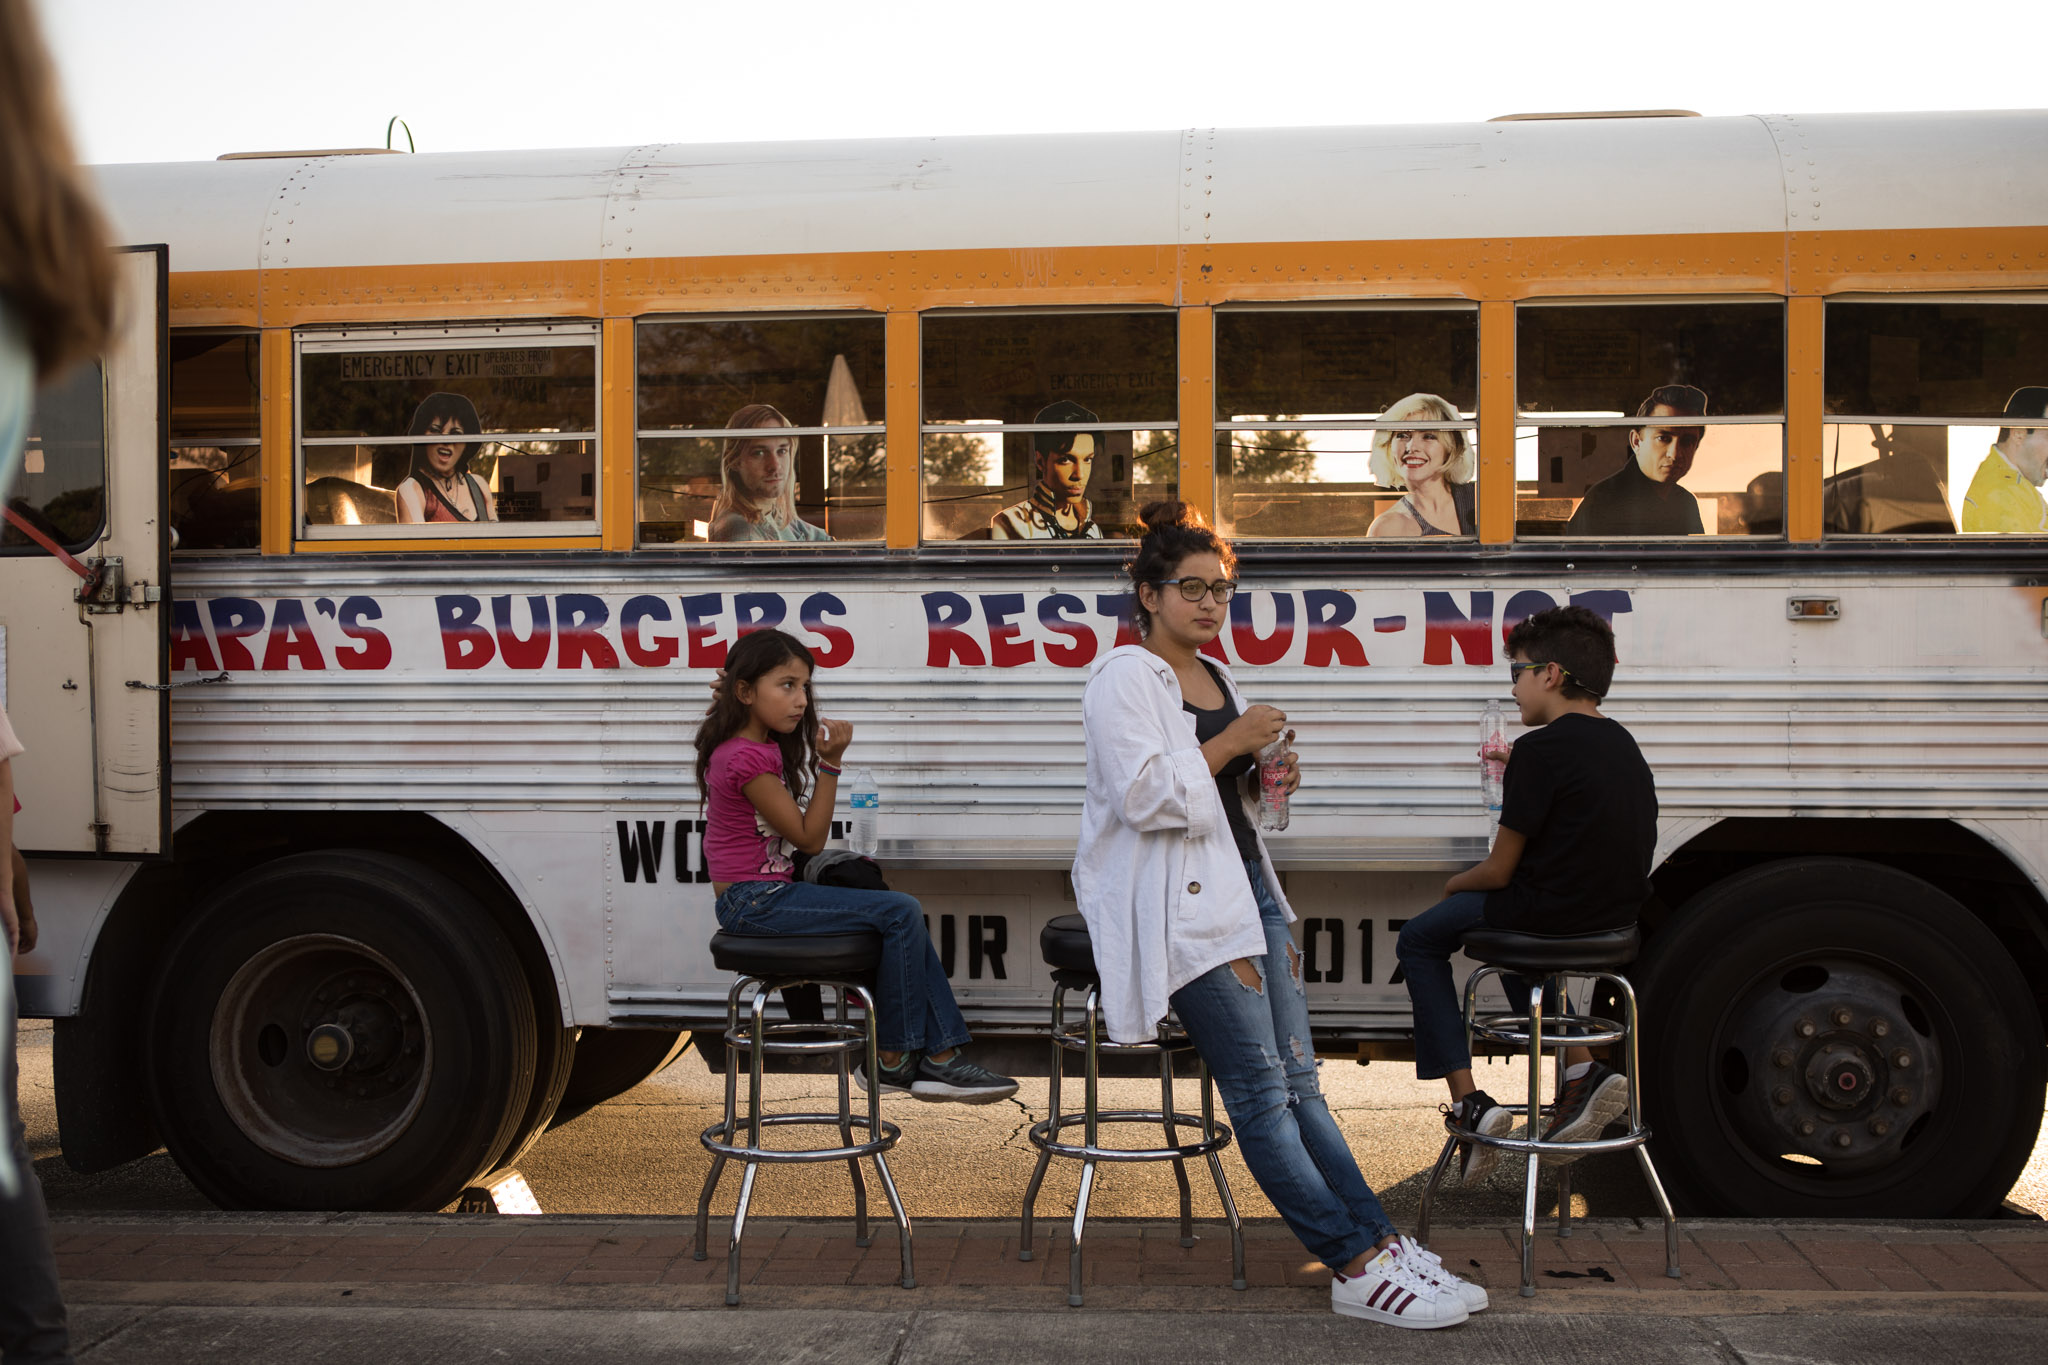 (From left) Aracely, 7, Andrea, 15, and Emilio, 9, sit outside of Papa's Burgers Restaur-not food truck at Restored By Light.